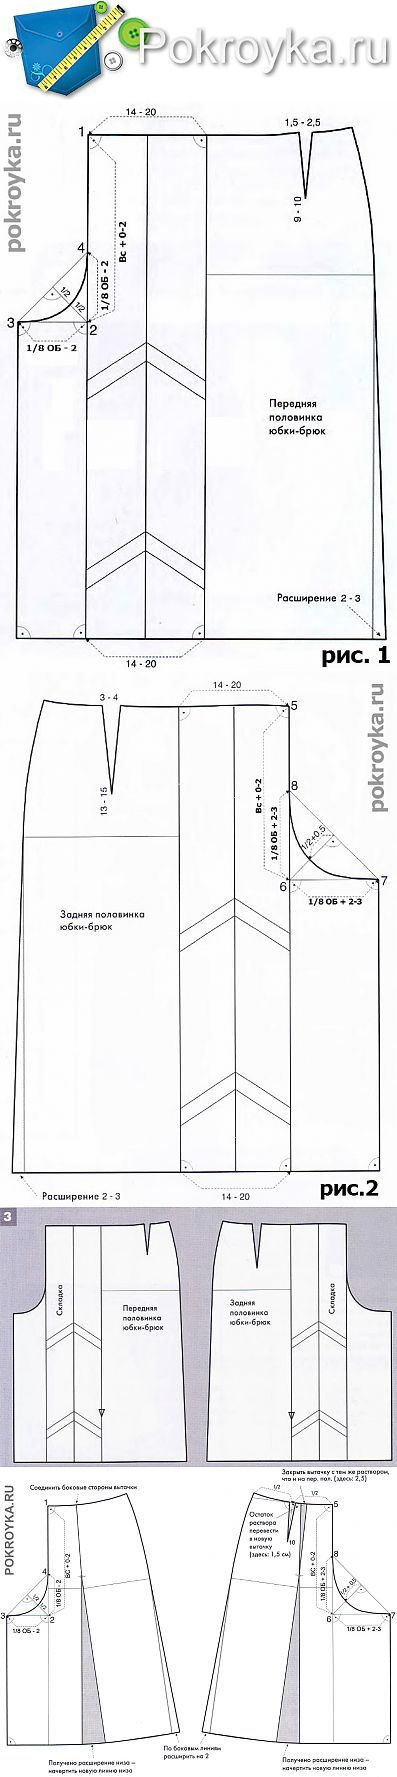 Culottes Pattern | pokroyka.ru-cutting and sewing lessons